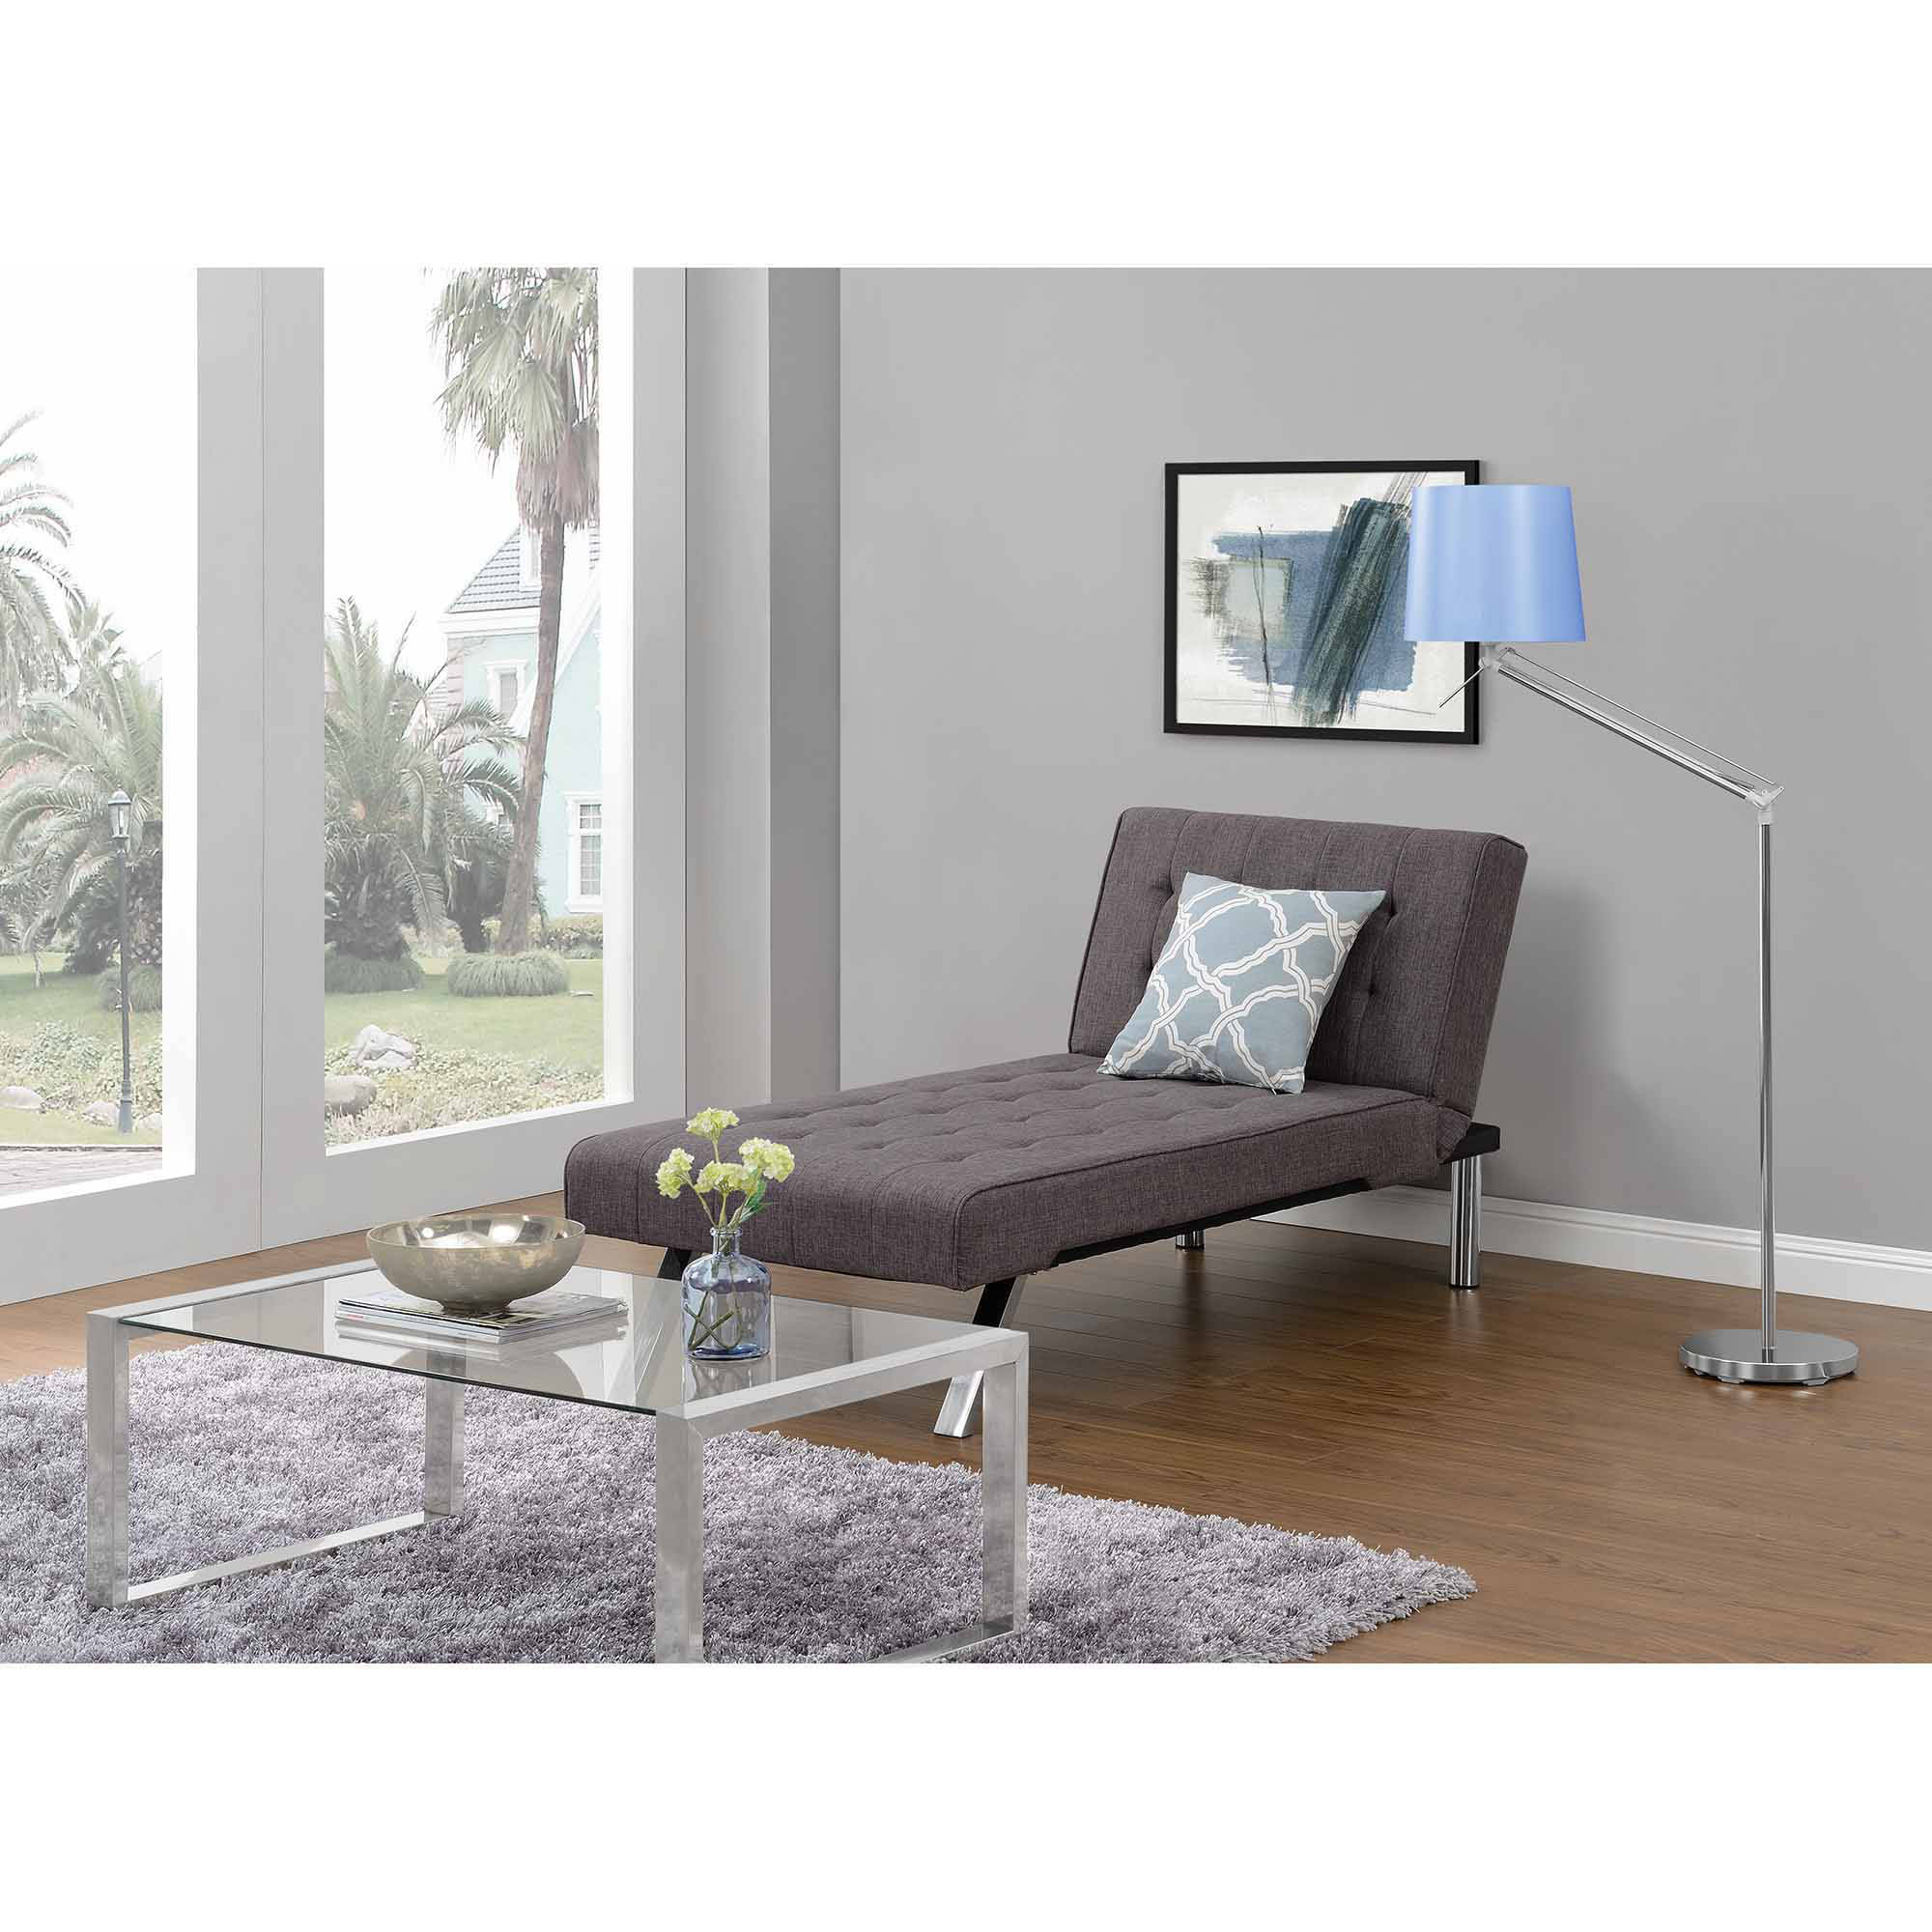 Emily Futon Chaise Lounger, Multiple Colors Walmartcom